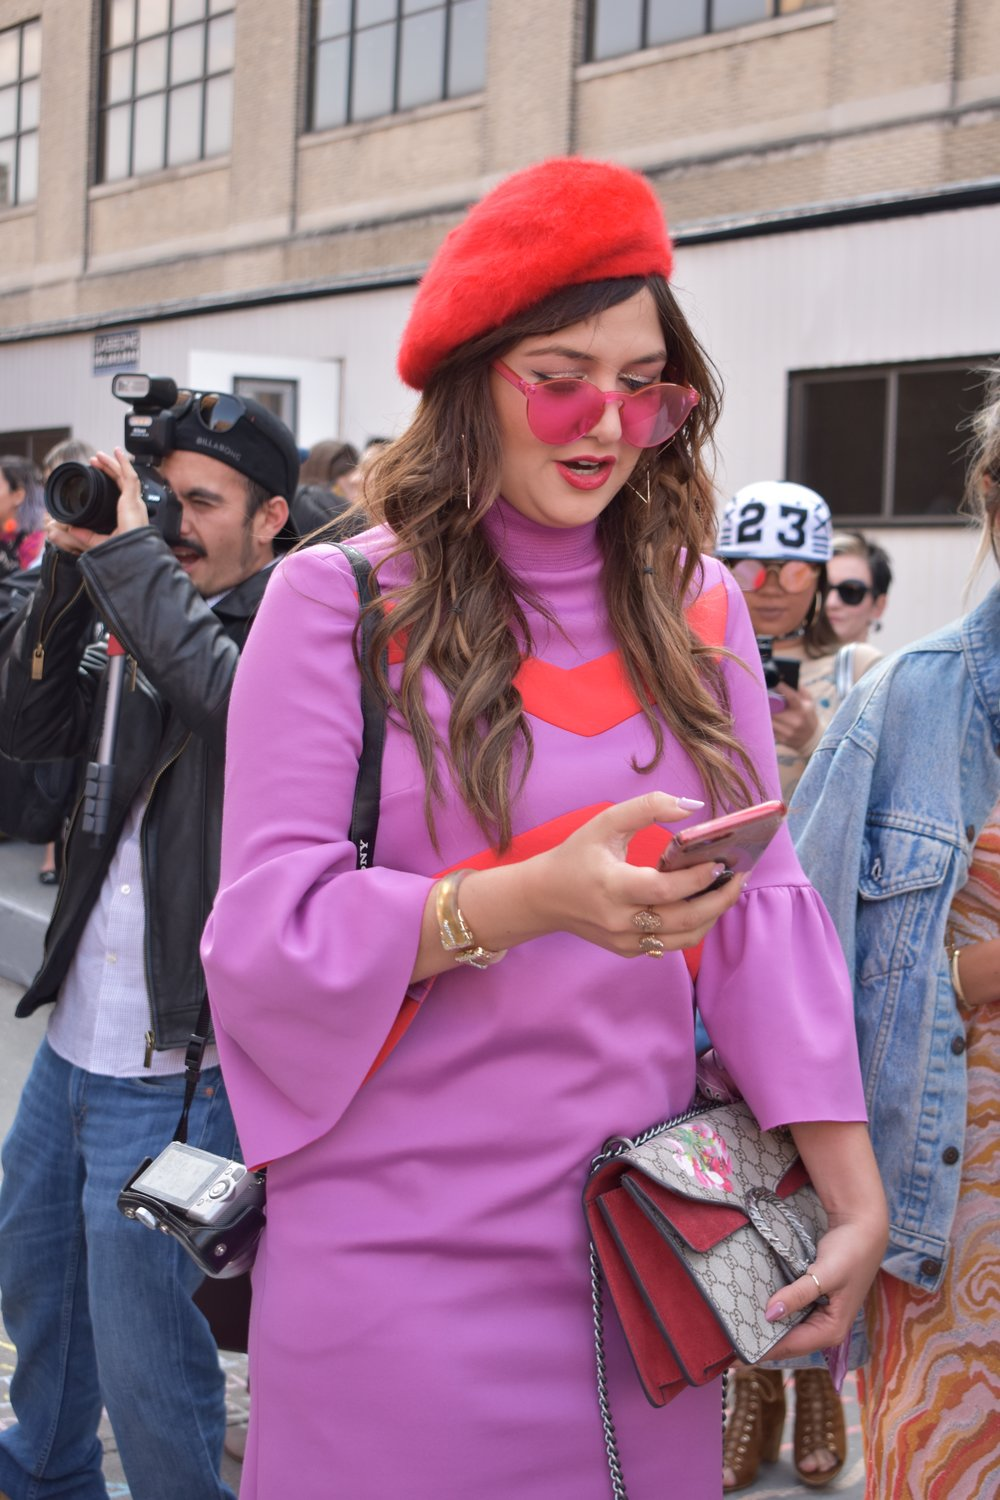 Why Instagram Superstars are Wearing Berets